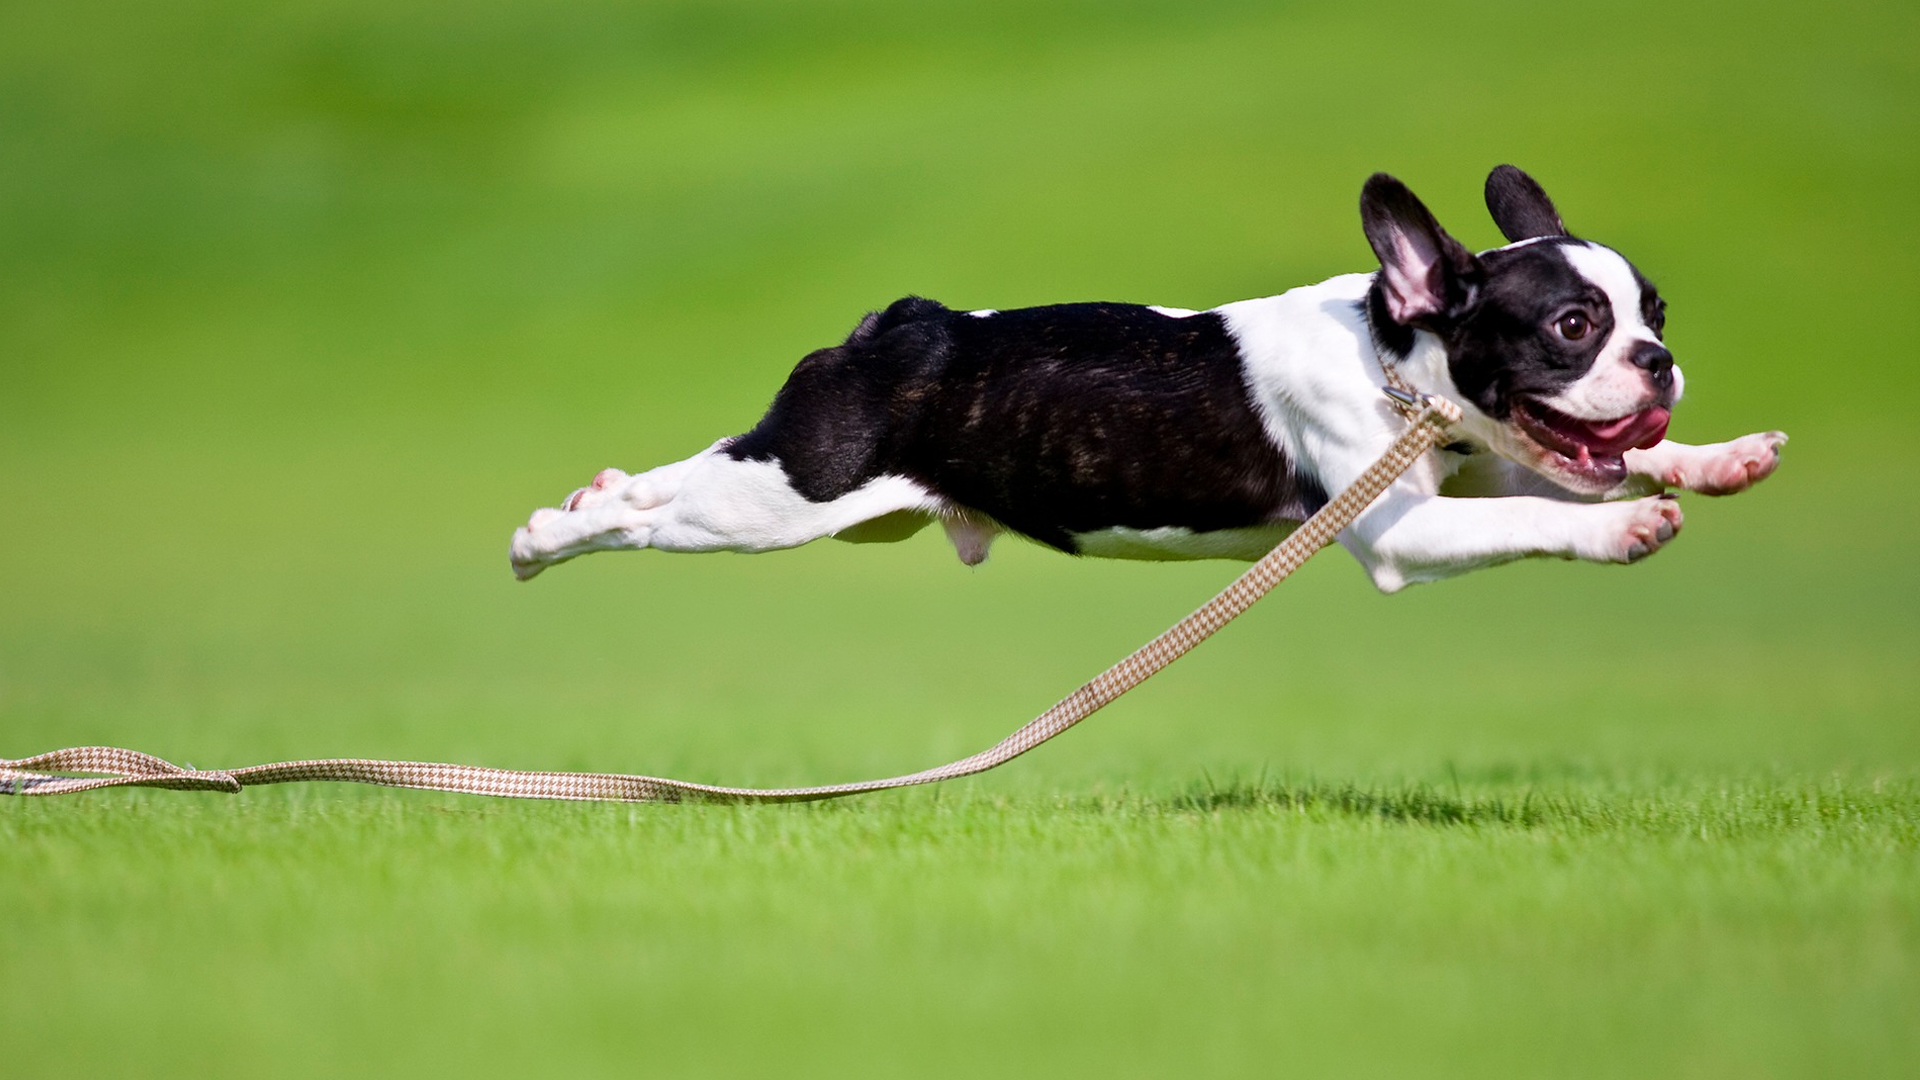 Does Your Dog Ever Start Running Around Like Crazy It S Called The Zoomies And Dogs Do It For A Reason,Cheapest City To Buy A House In Arizona